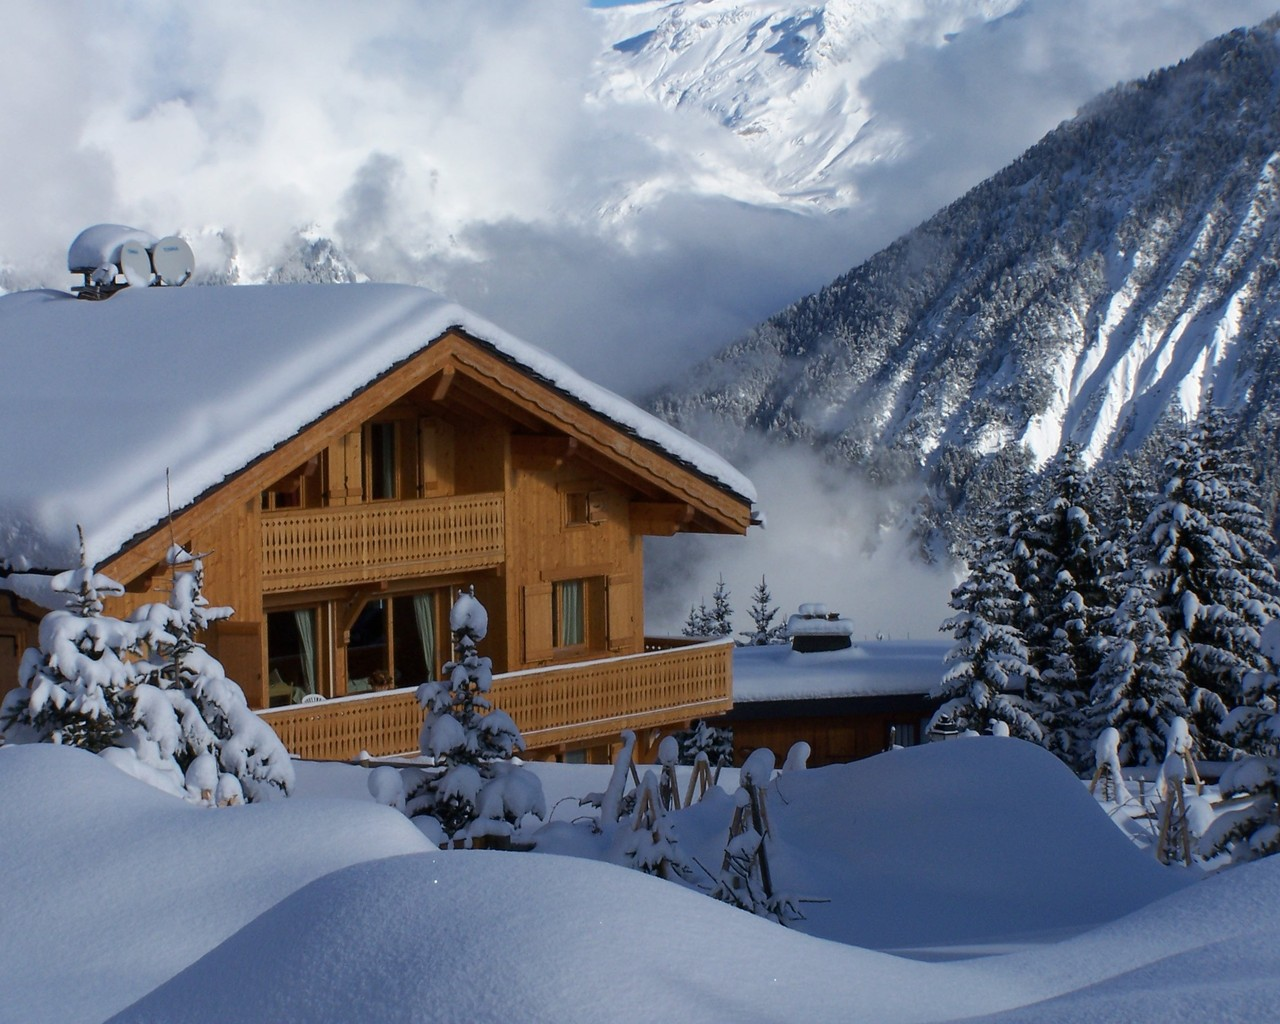 Wood chalet in winter